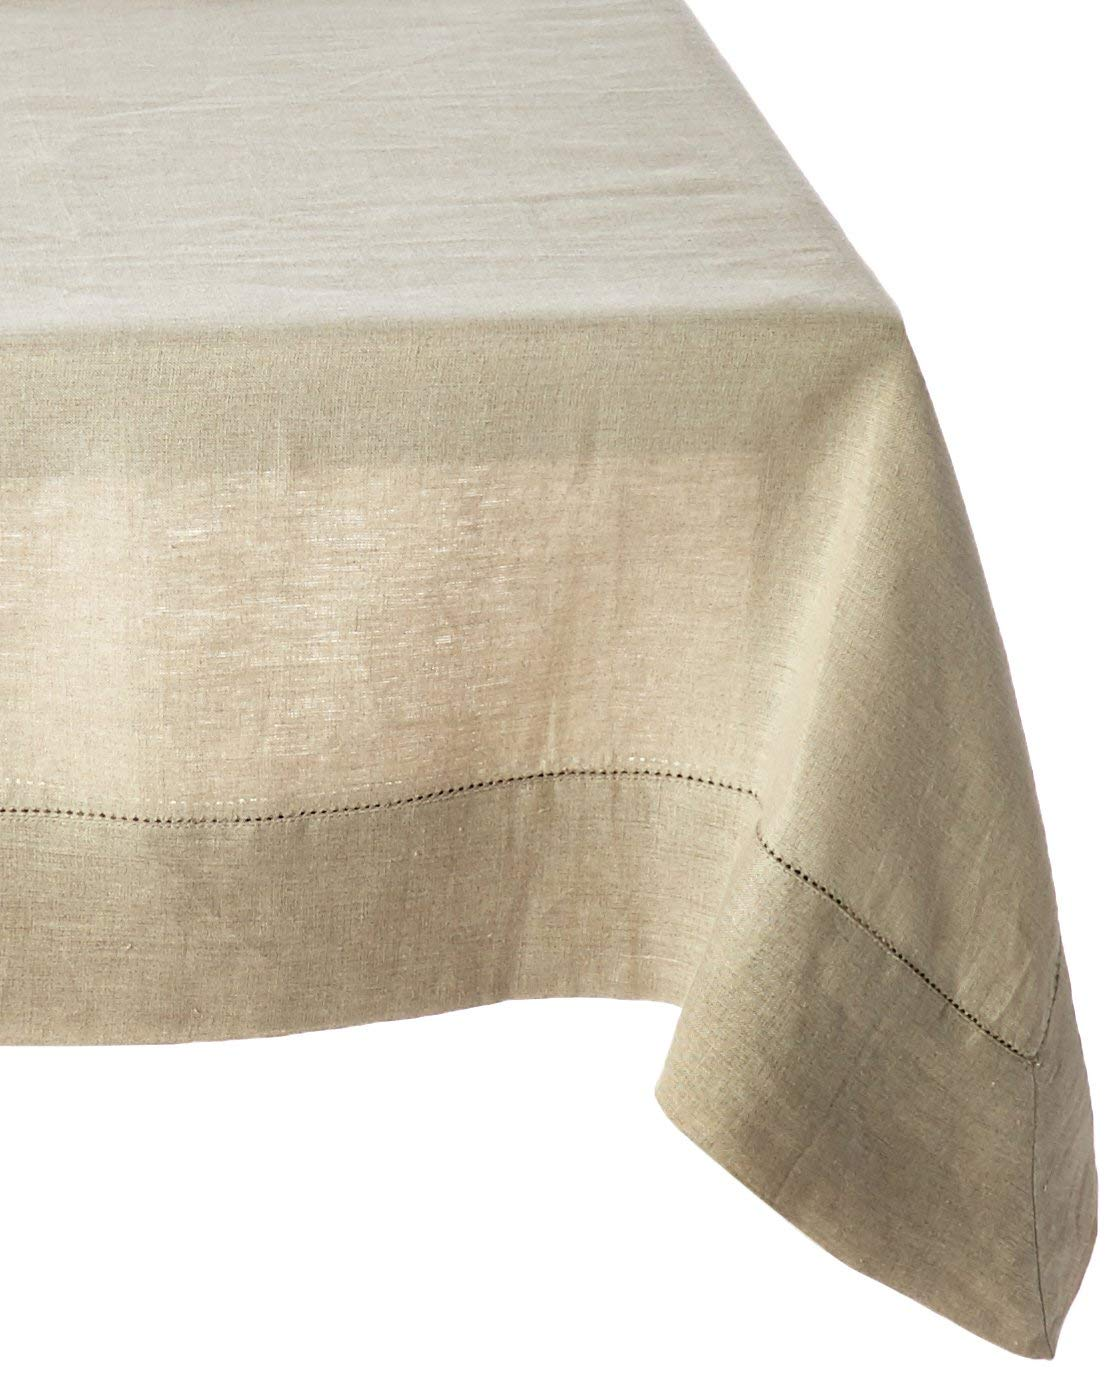 100% Linen Hemstitch Table Cloth - Size 60x108 Natural - Hand Crafted and Hand Stitched Table Cloth with Hemstitch detailing. The pure Linen fabric works well in both casual and formal settings